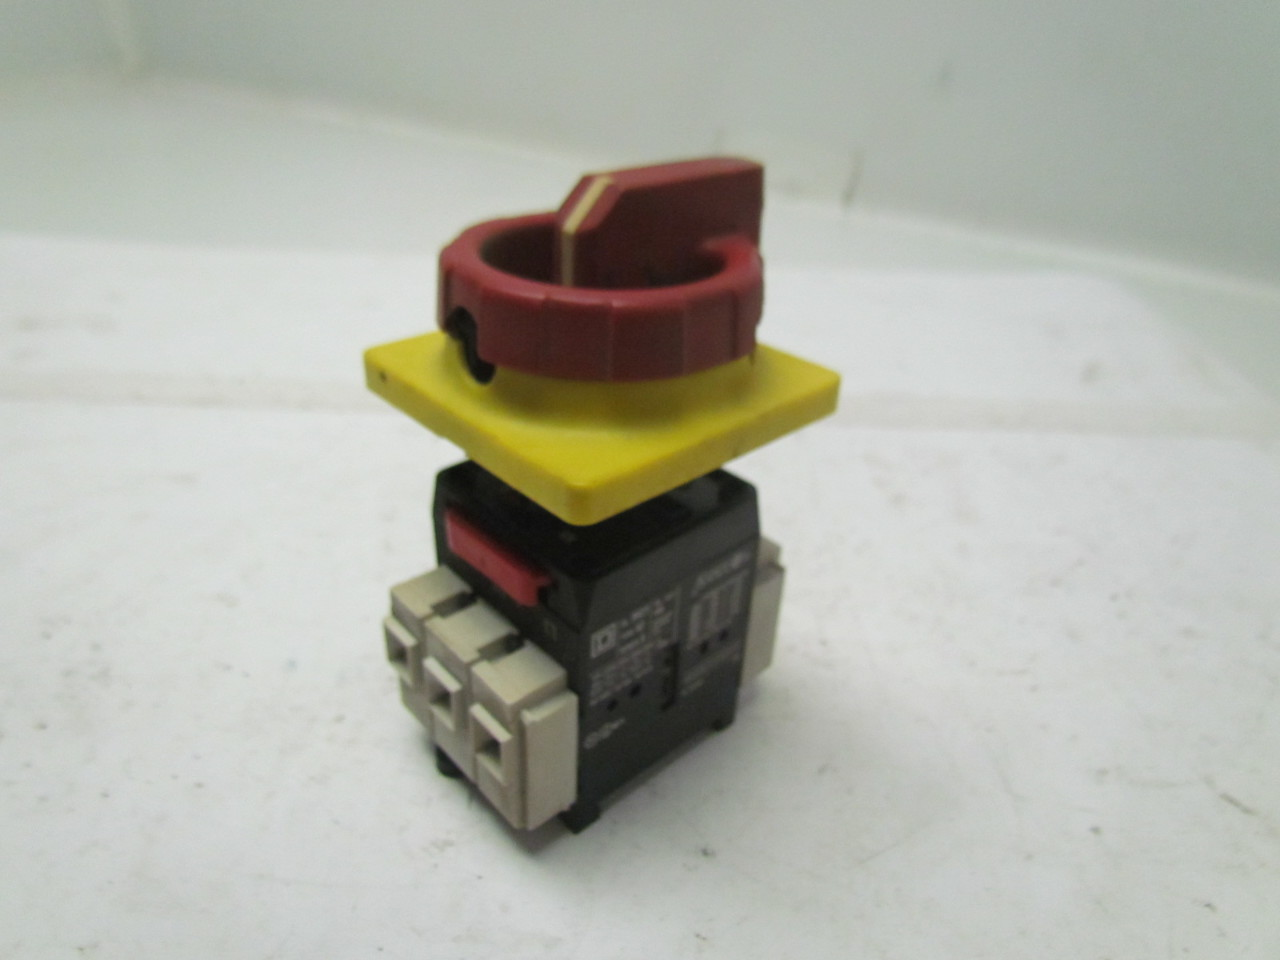 Square d cl9421 safety disconnect switch with handle 40a for Square d motor disconnect switch